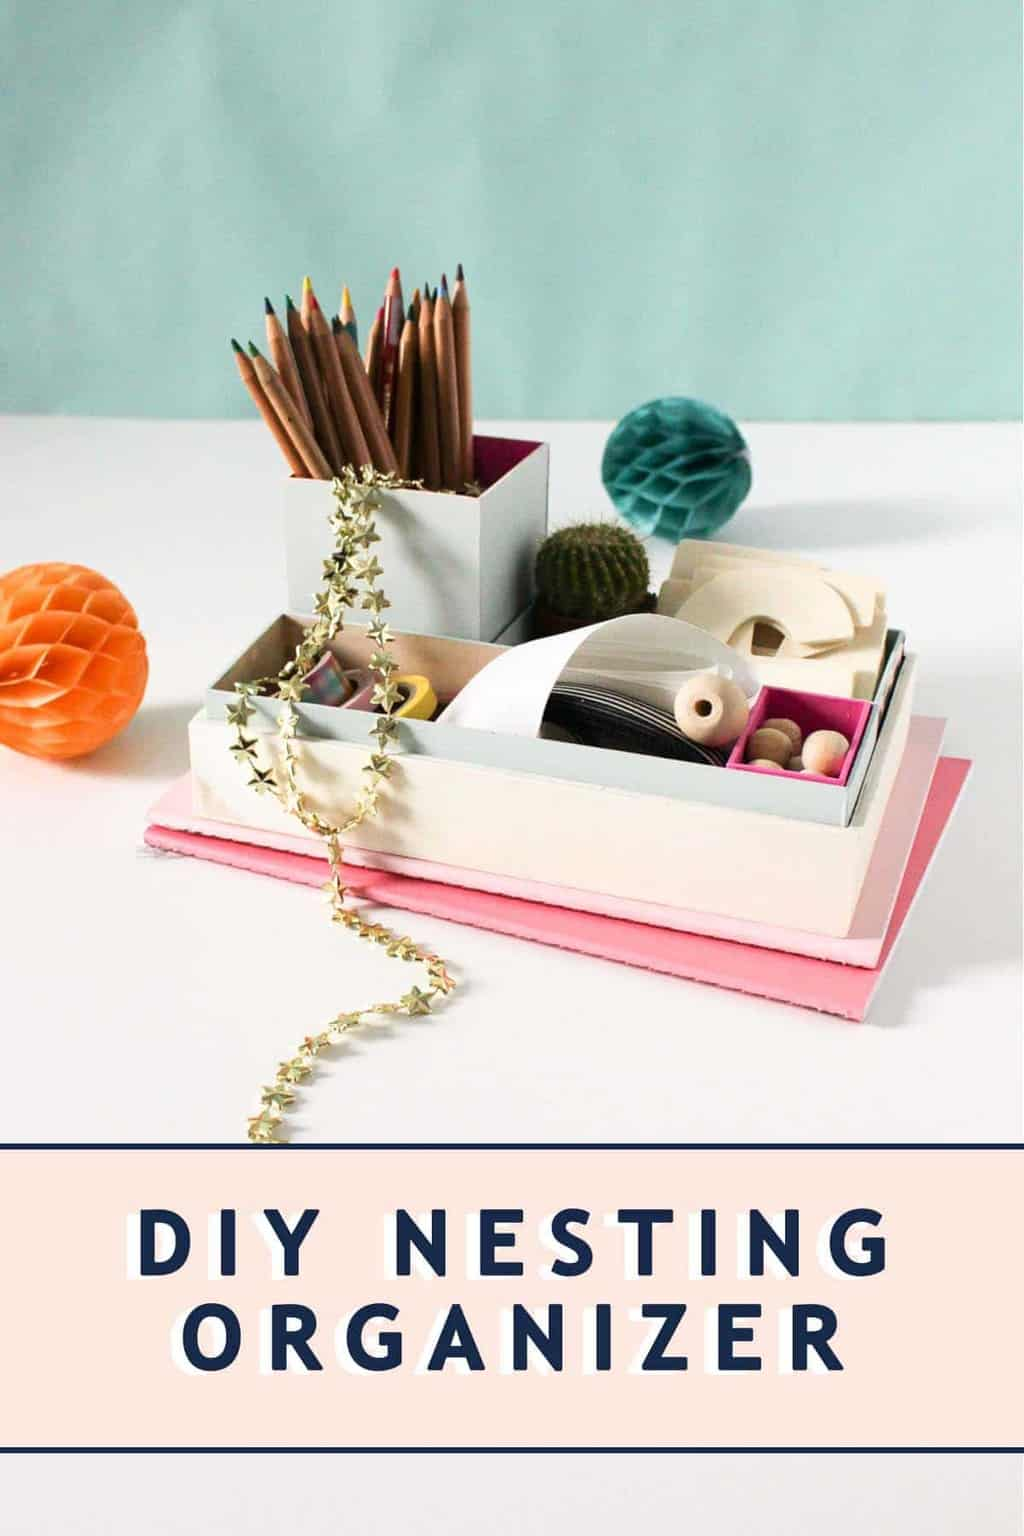 photo of an office diy nesting organizer by top Houston lifestyle blogger Ashley Rose of Sugar & Cloth